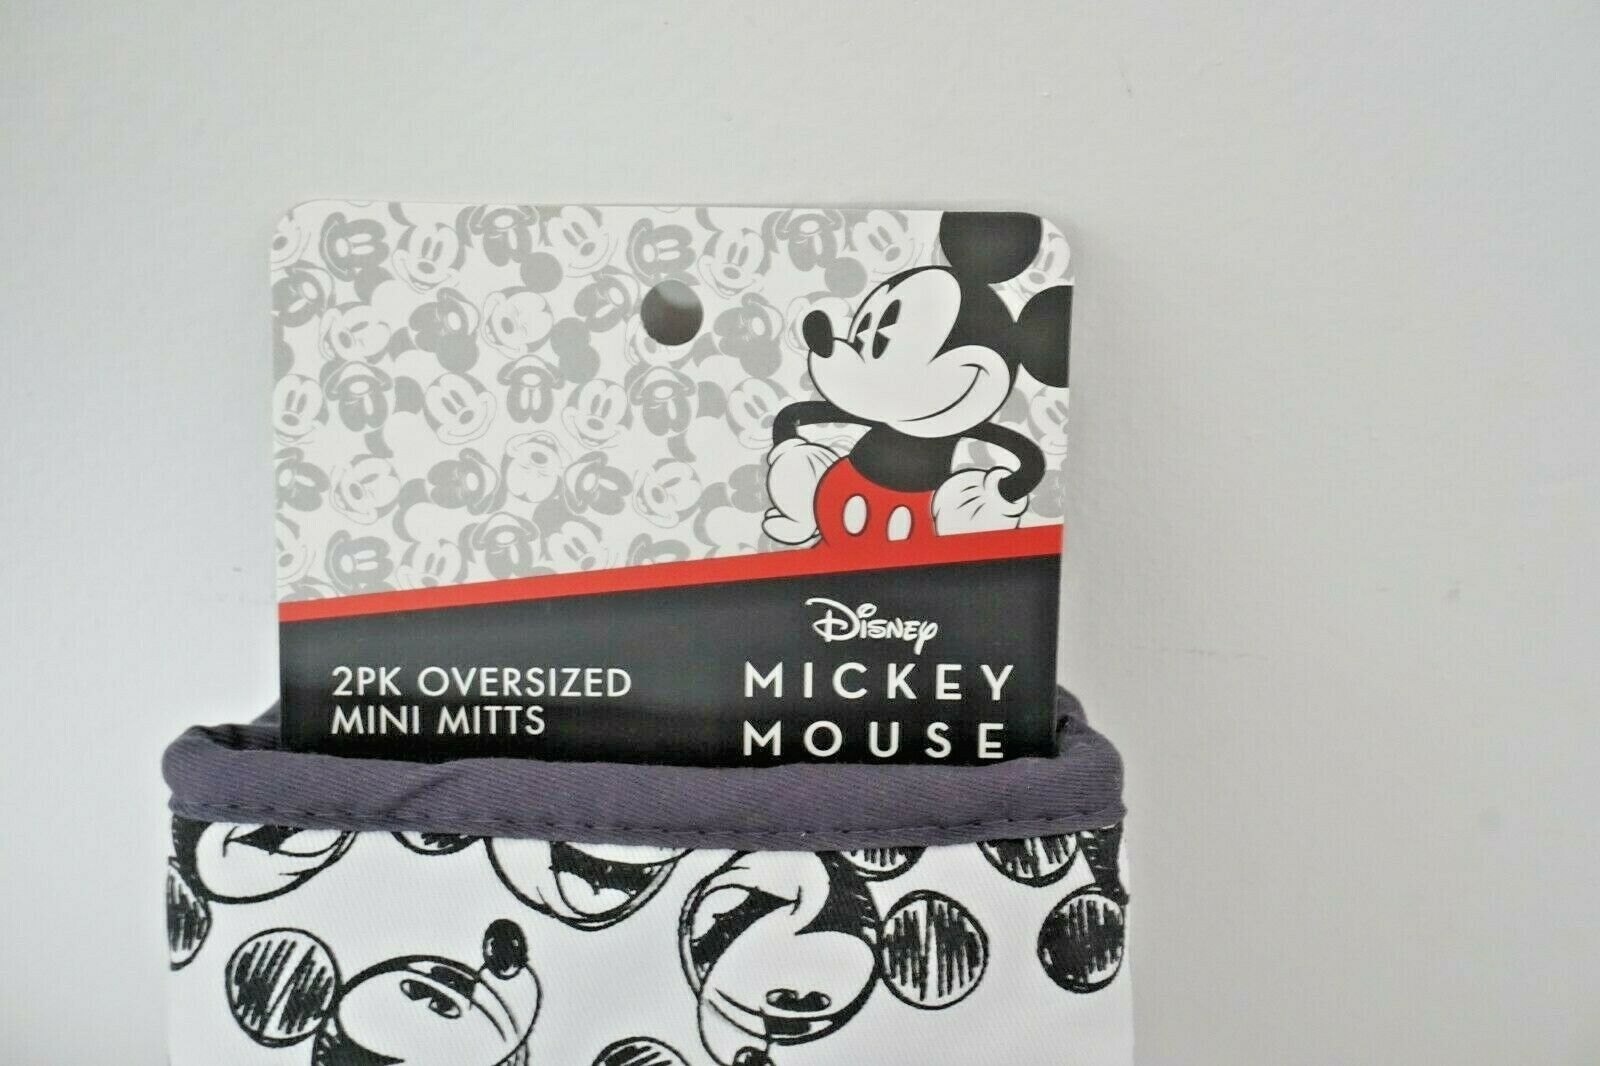 Disney Mickey And Minnie Mouse 2 Oversized Mini Oven Mitts NEW